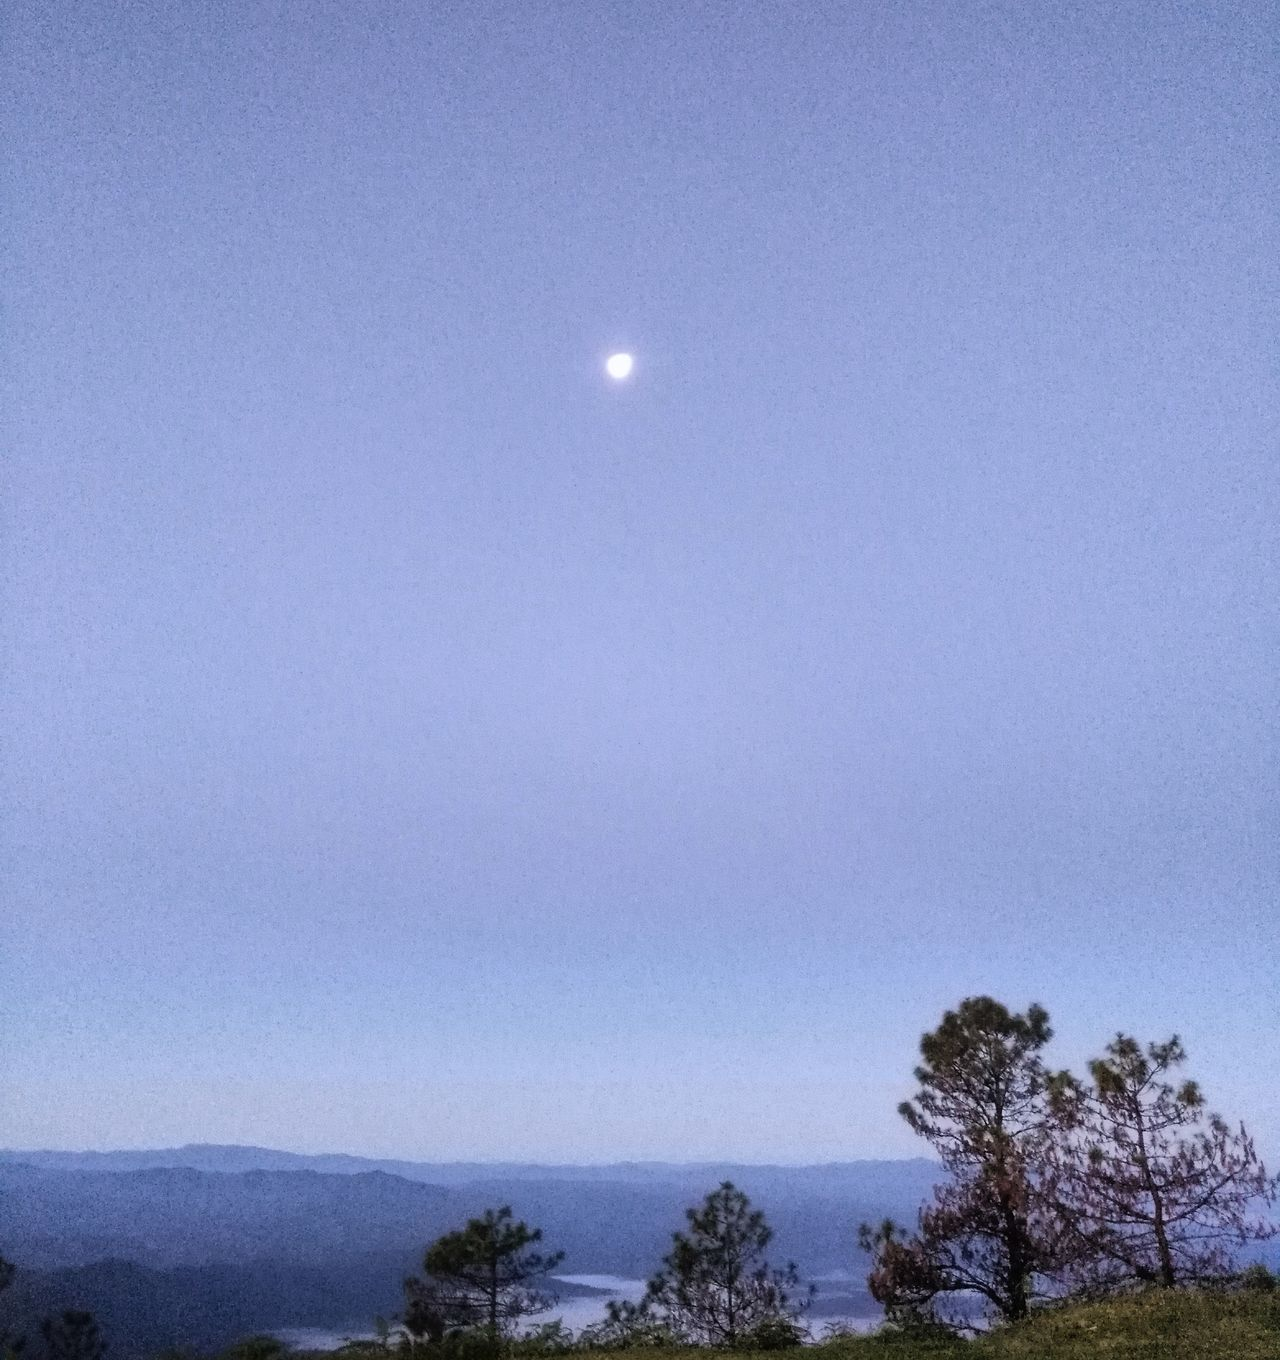 Moon light Moon Sky Nature No People Tree Beauty In Nature Outdoors Morning View Morninglight My Hometown Samoeng Chiang Mai | Thailand Fulfilling Mountain Nature Back To Nature Beauty In Nature Sightseeing Thailand